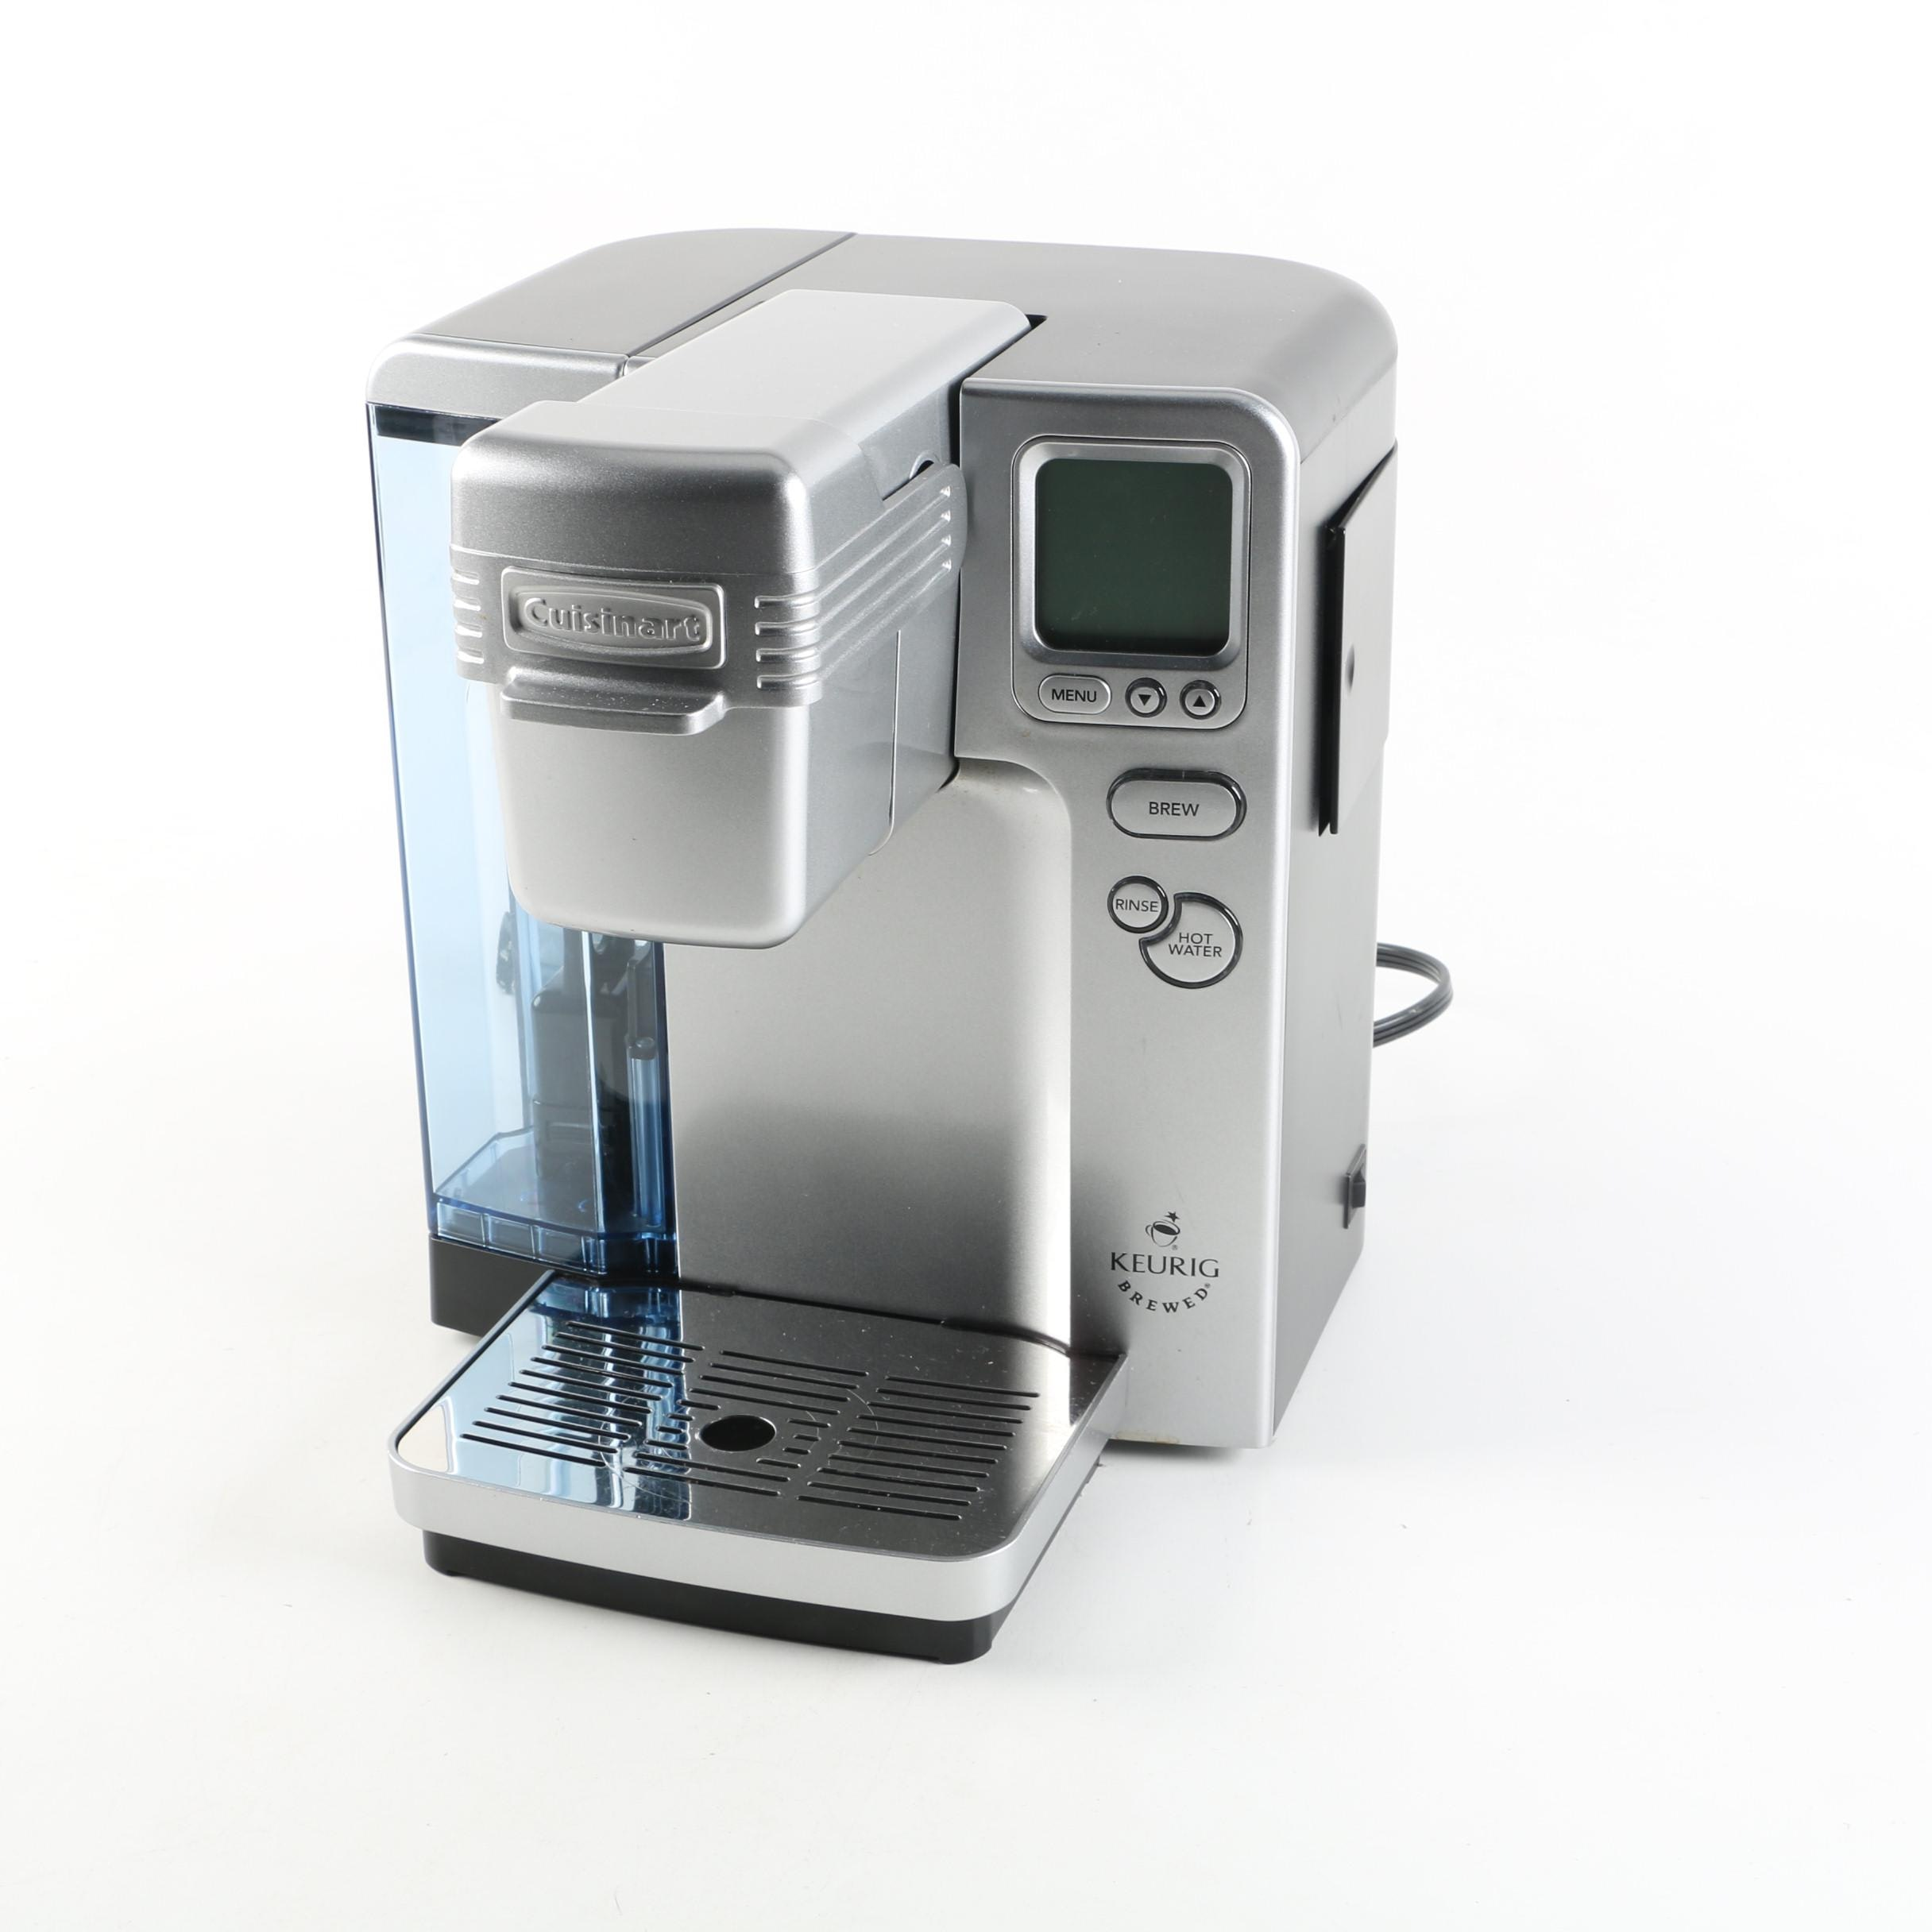 Cuisinart SS-700 Single Serve Coffee Brewing System